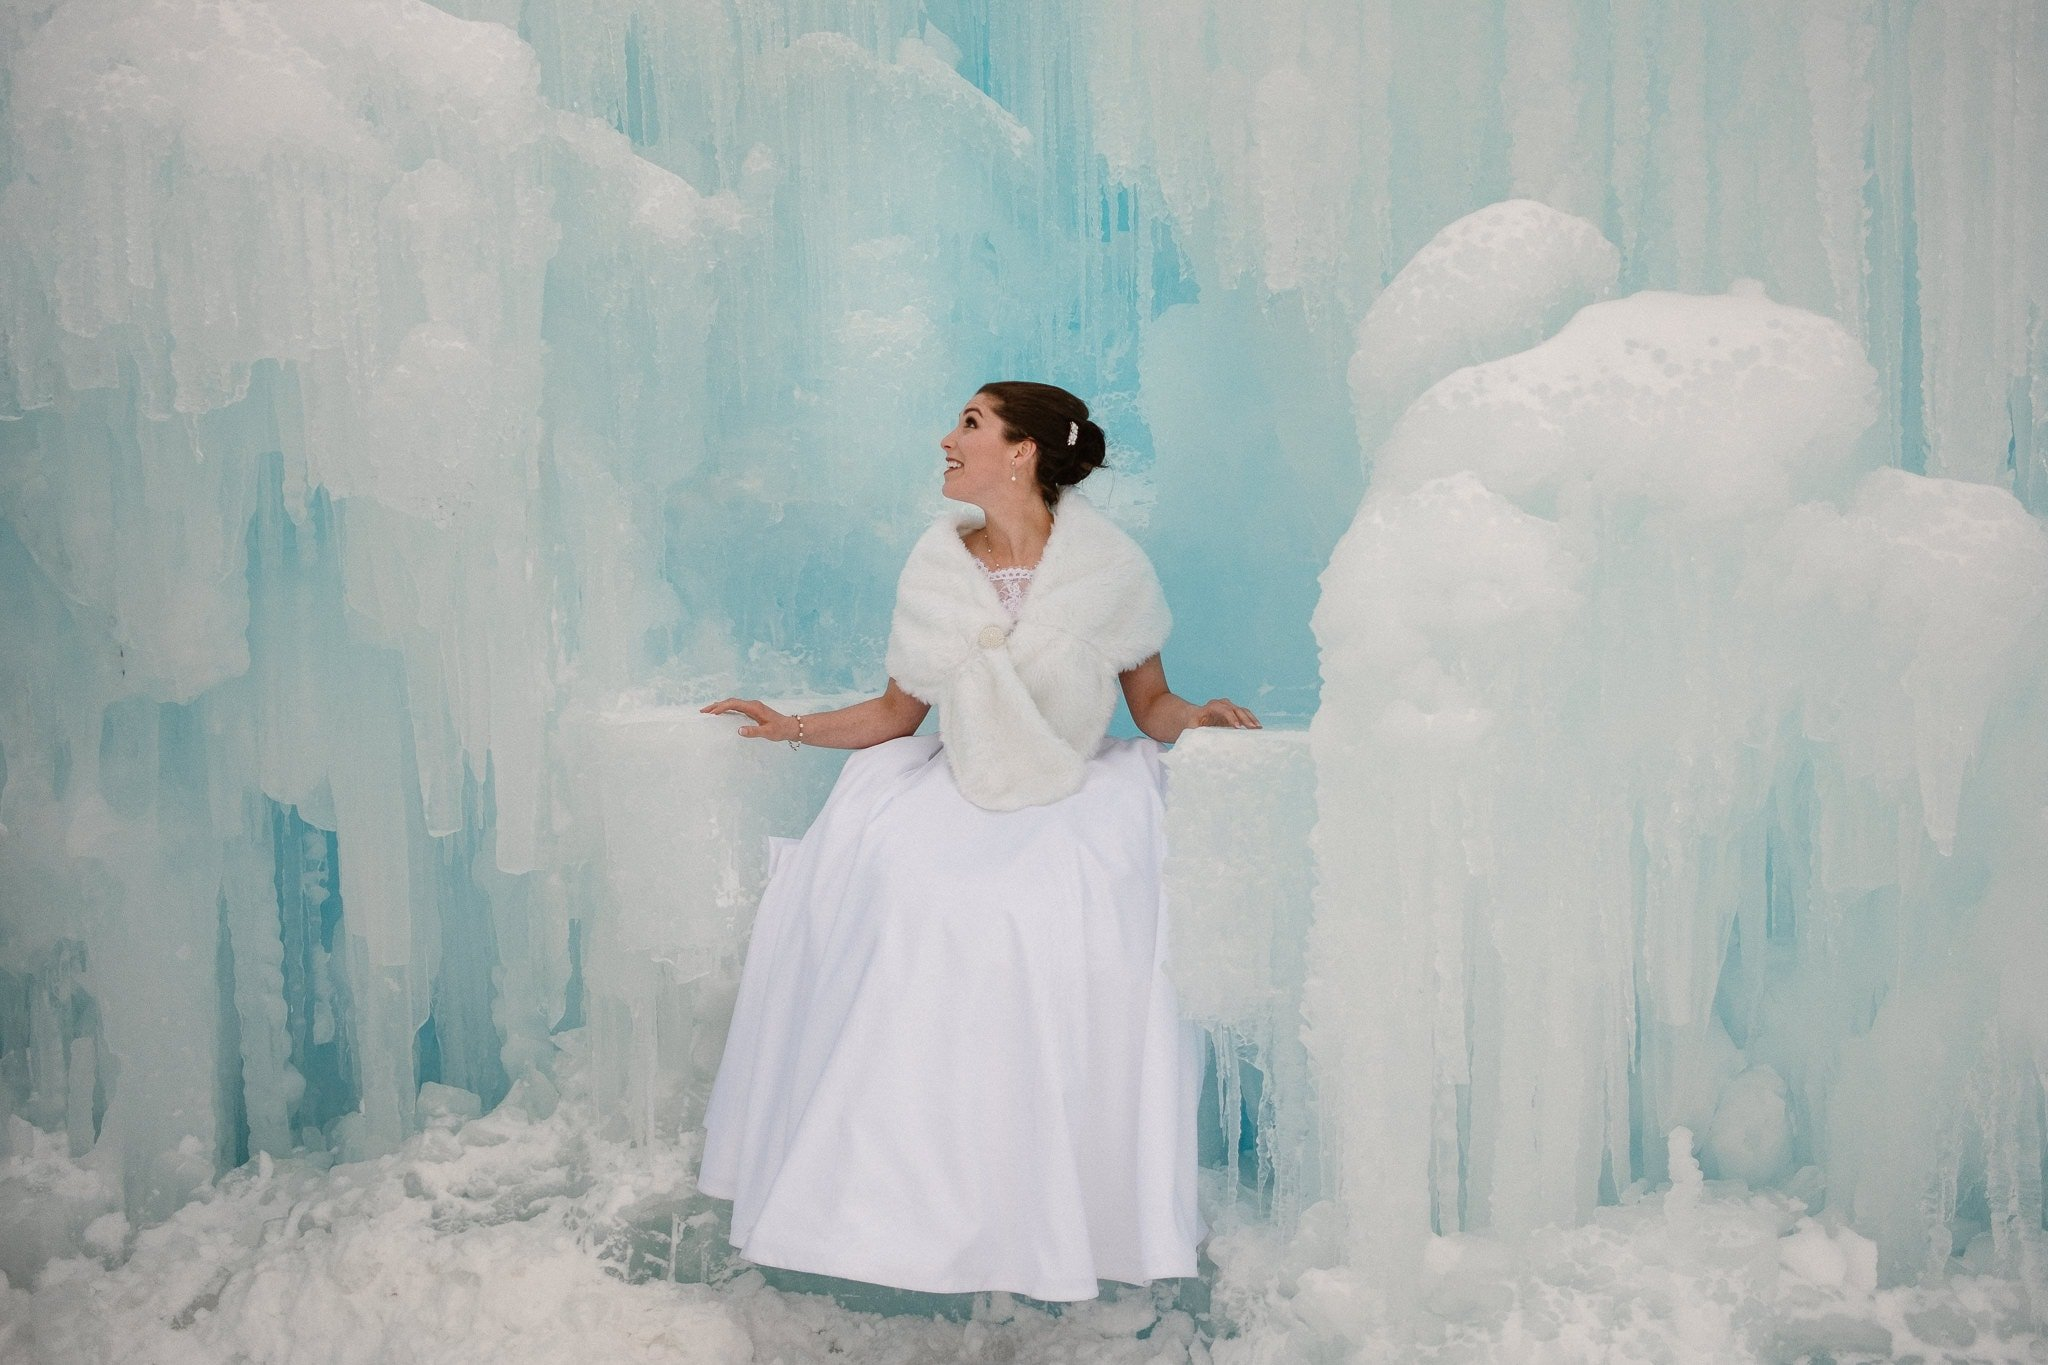 Ice Castles wedding photography, Dillon Colorado winter elopement, bride inside ice castle